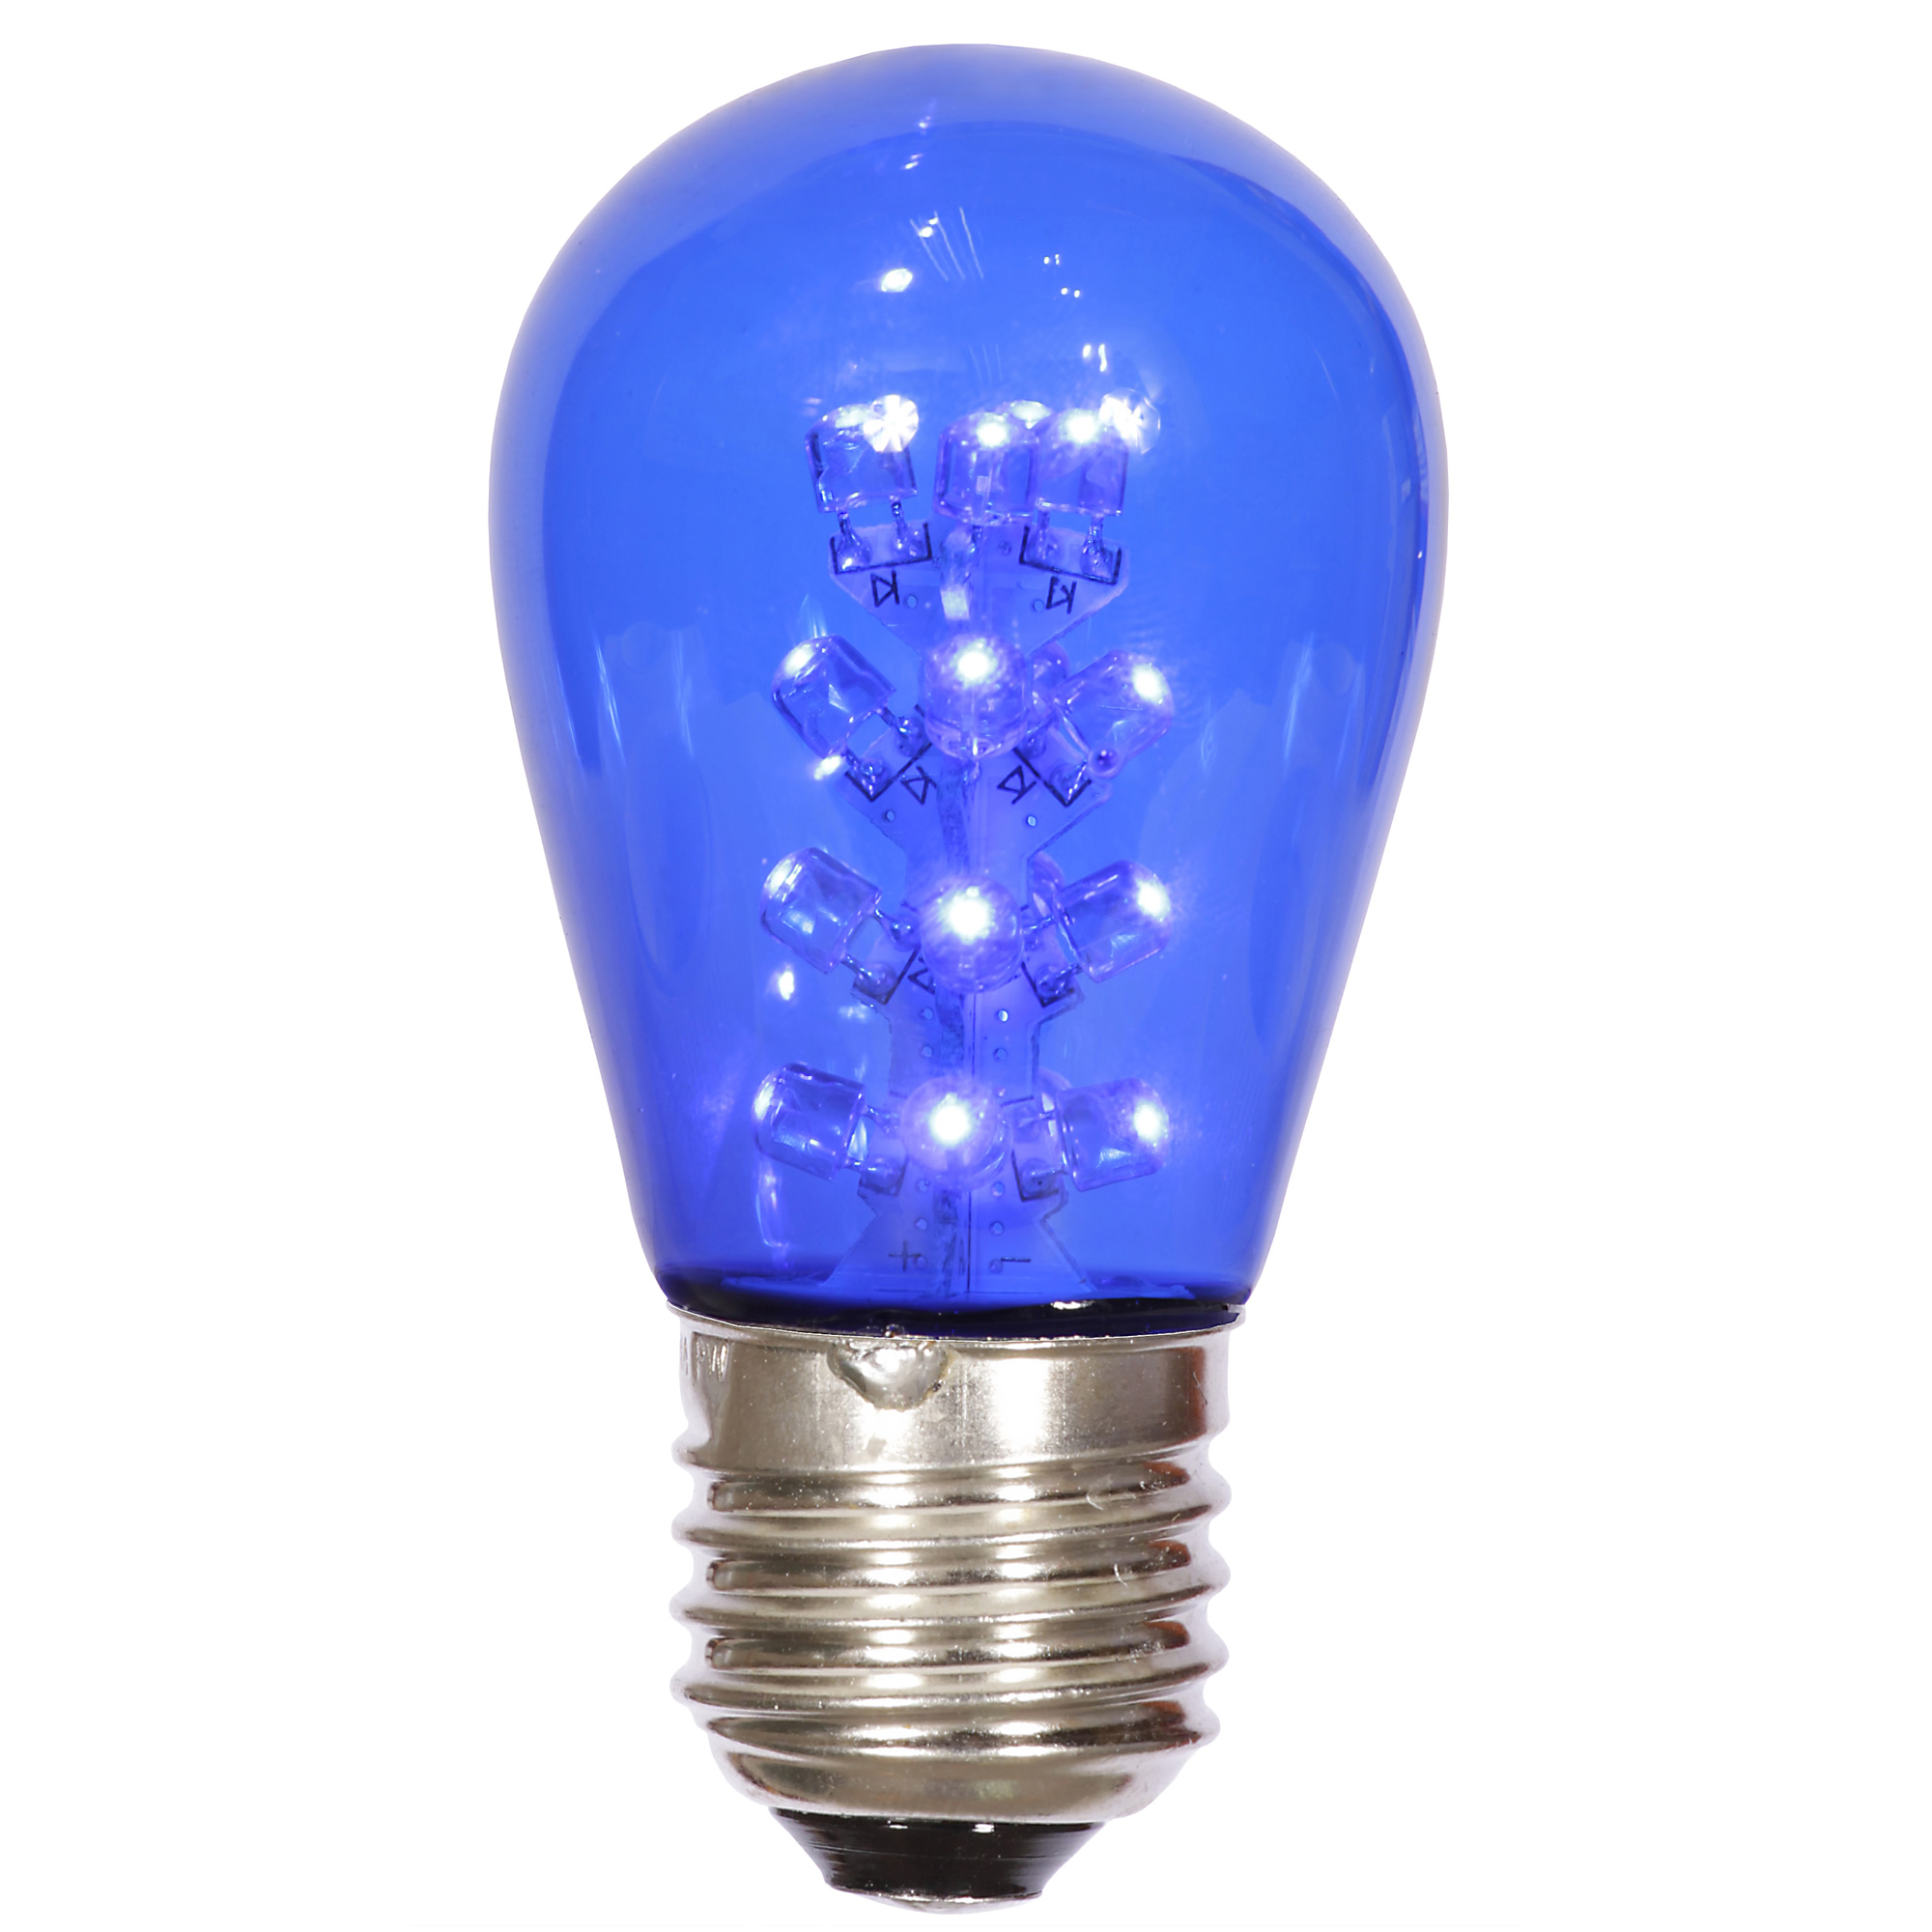 Vickerman S14 LED Blue Transparent Bulb E26 Nickel Base